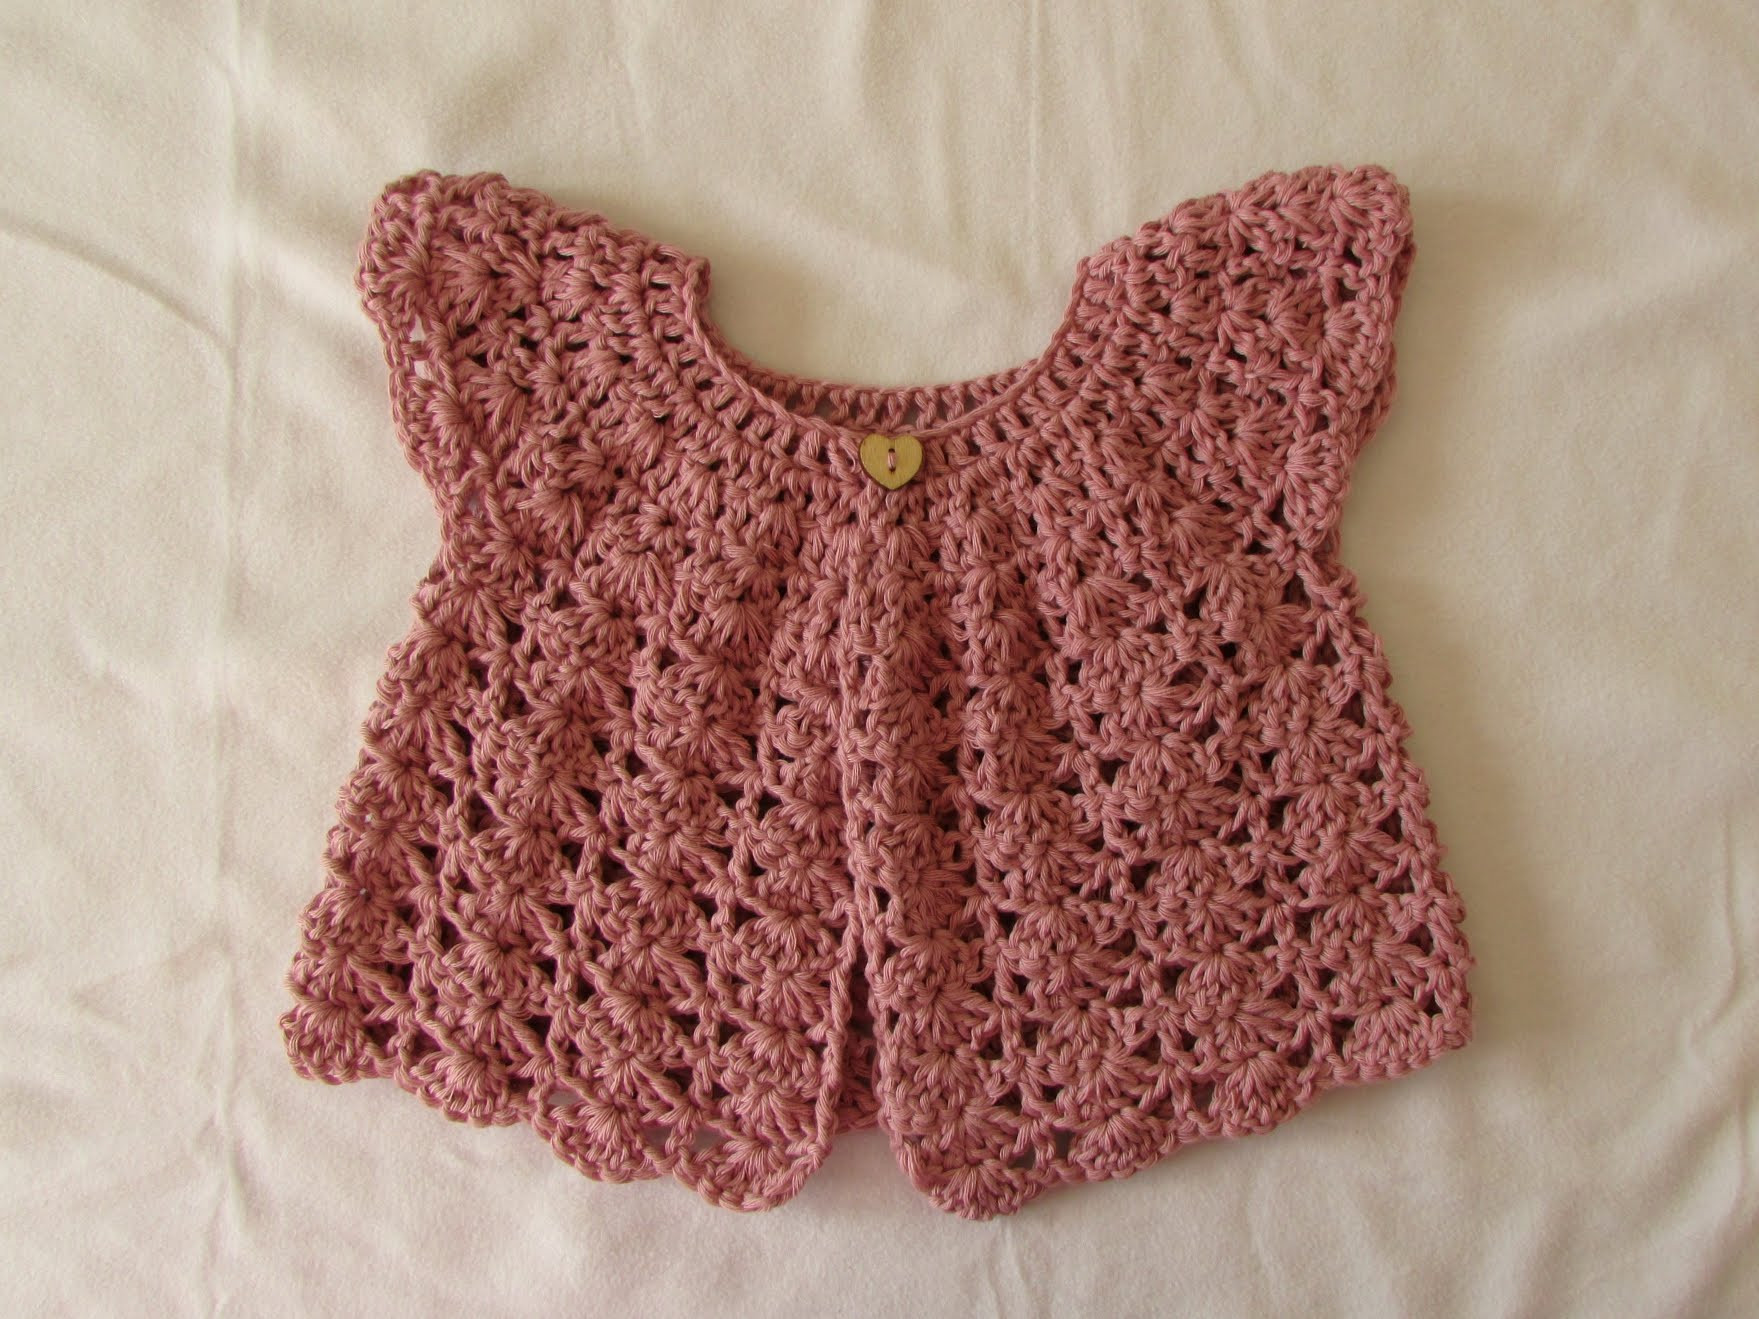 Crochet toddler Sweater Inspirational Baby Crochet Sweater Of Lovely 50 Photos Crochet toddler Sweater